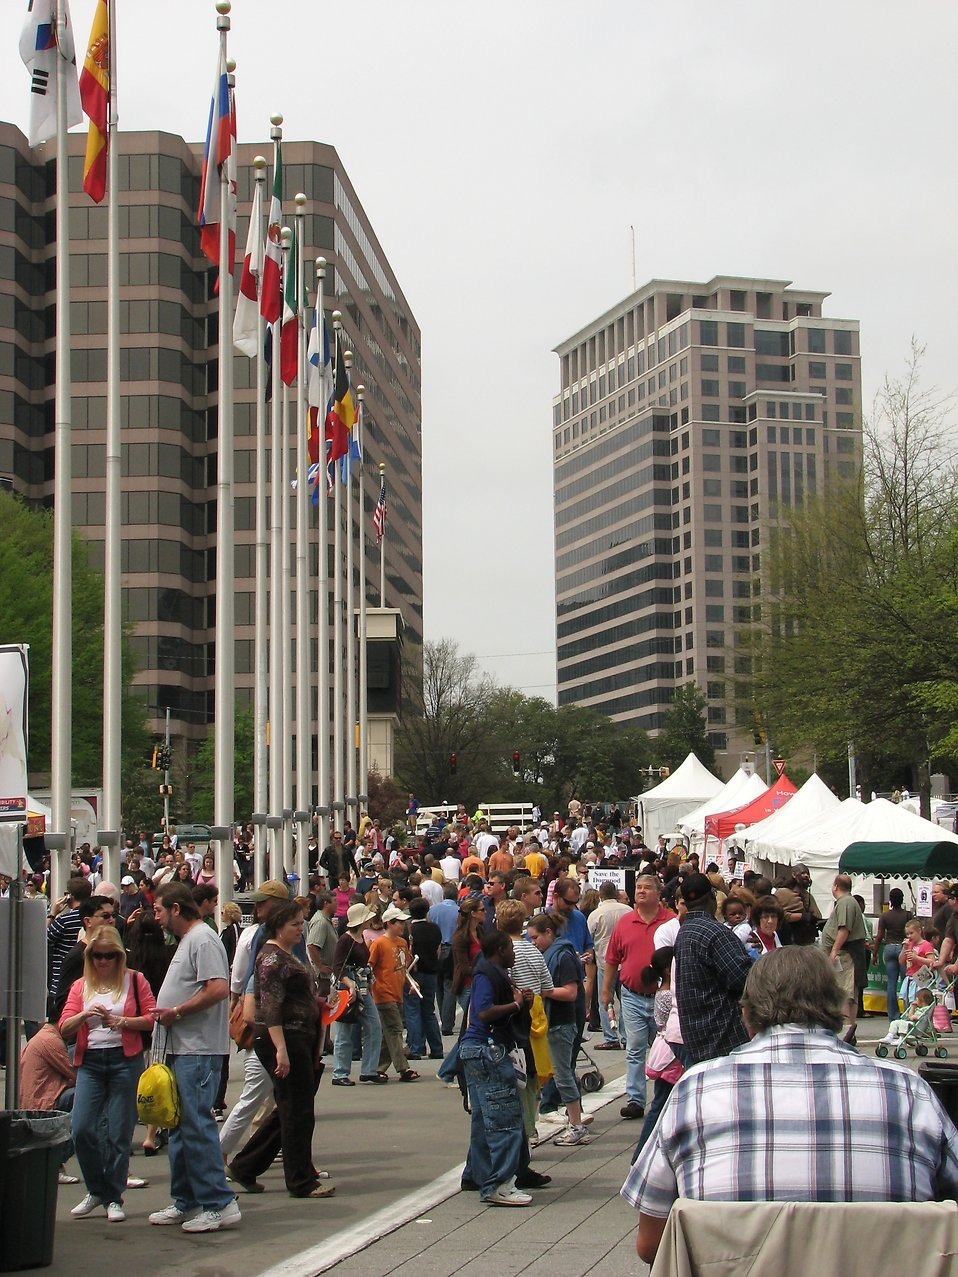 Crowds at downtown festival : Free Stock Photo